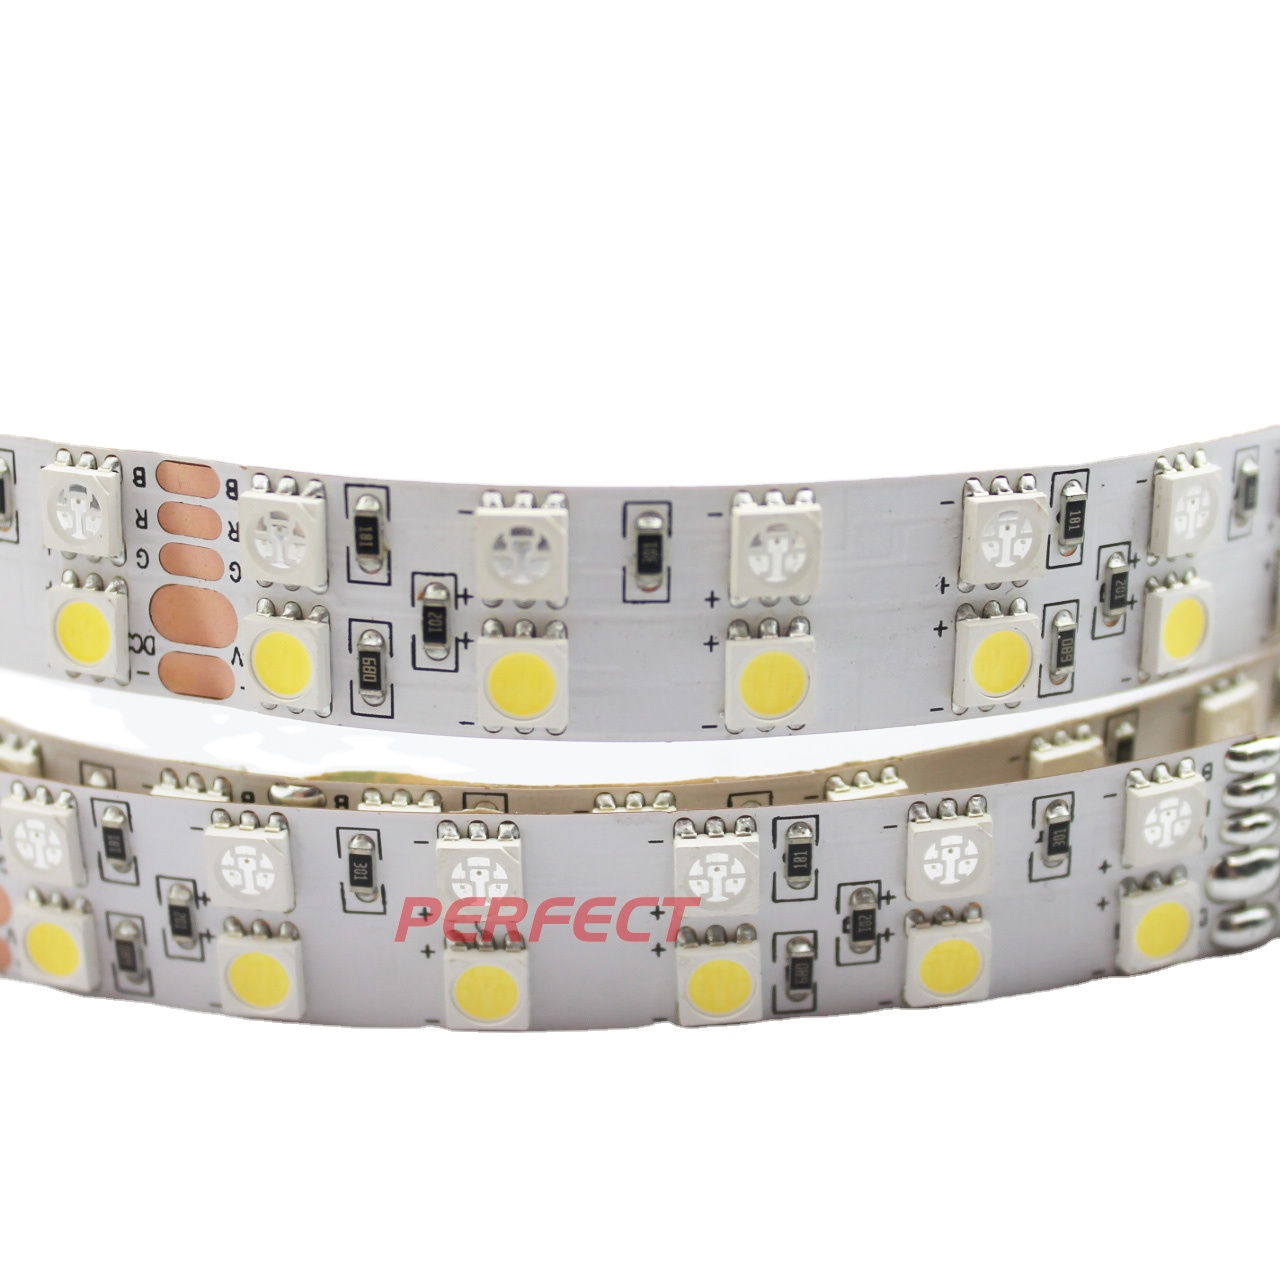 China Manufacturer High Lumen DC 24V SMD 5050 RGBW Flexible Led Strip Lights with Remote Controller